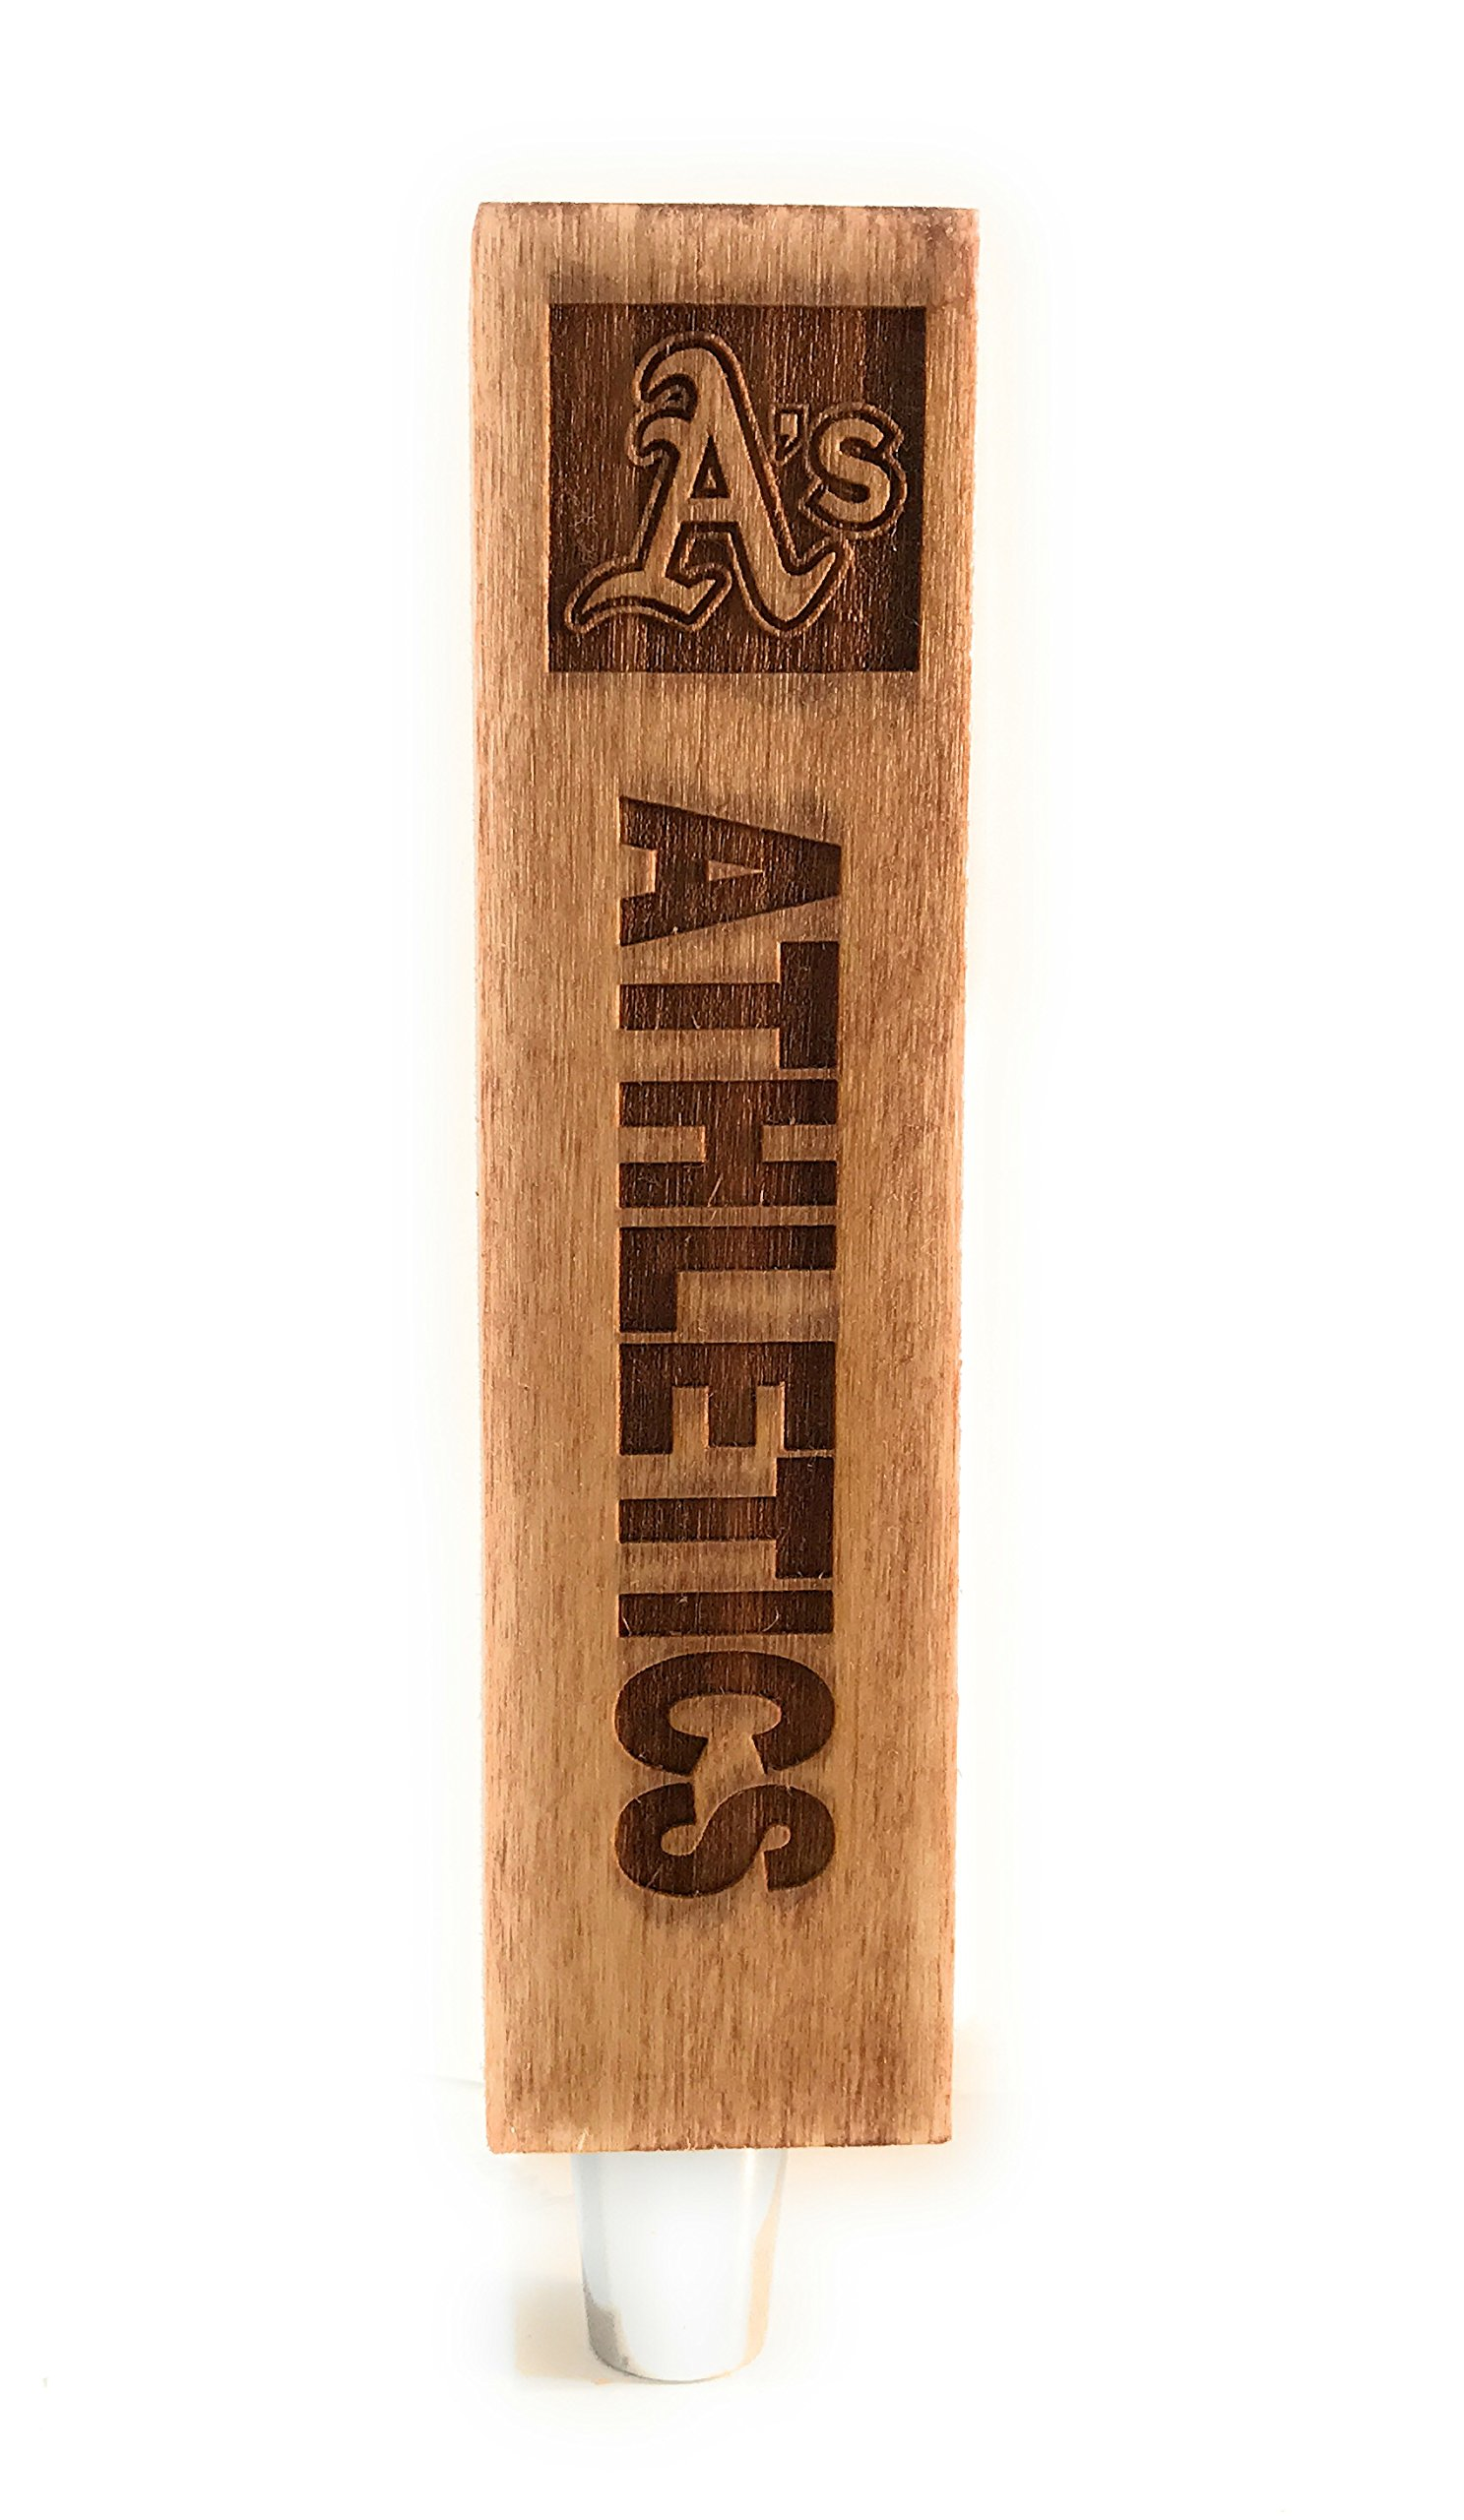 Oakland Athletics A's Engraved Beer Tap Handles